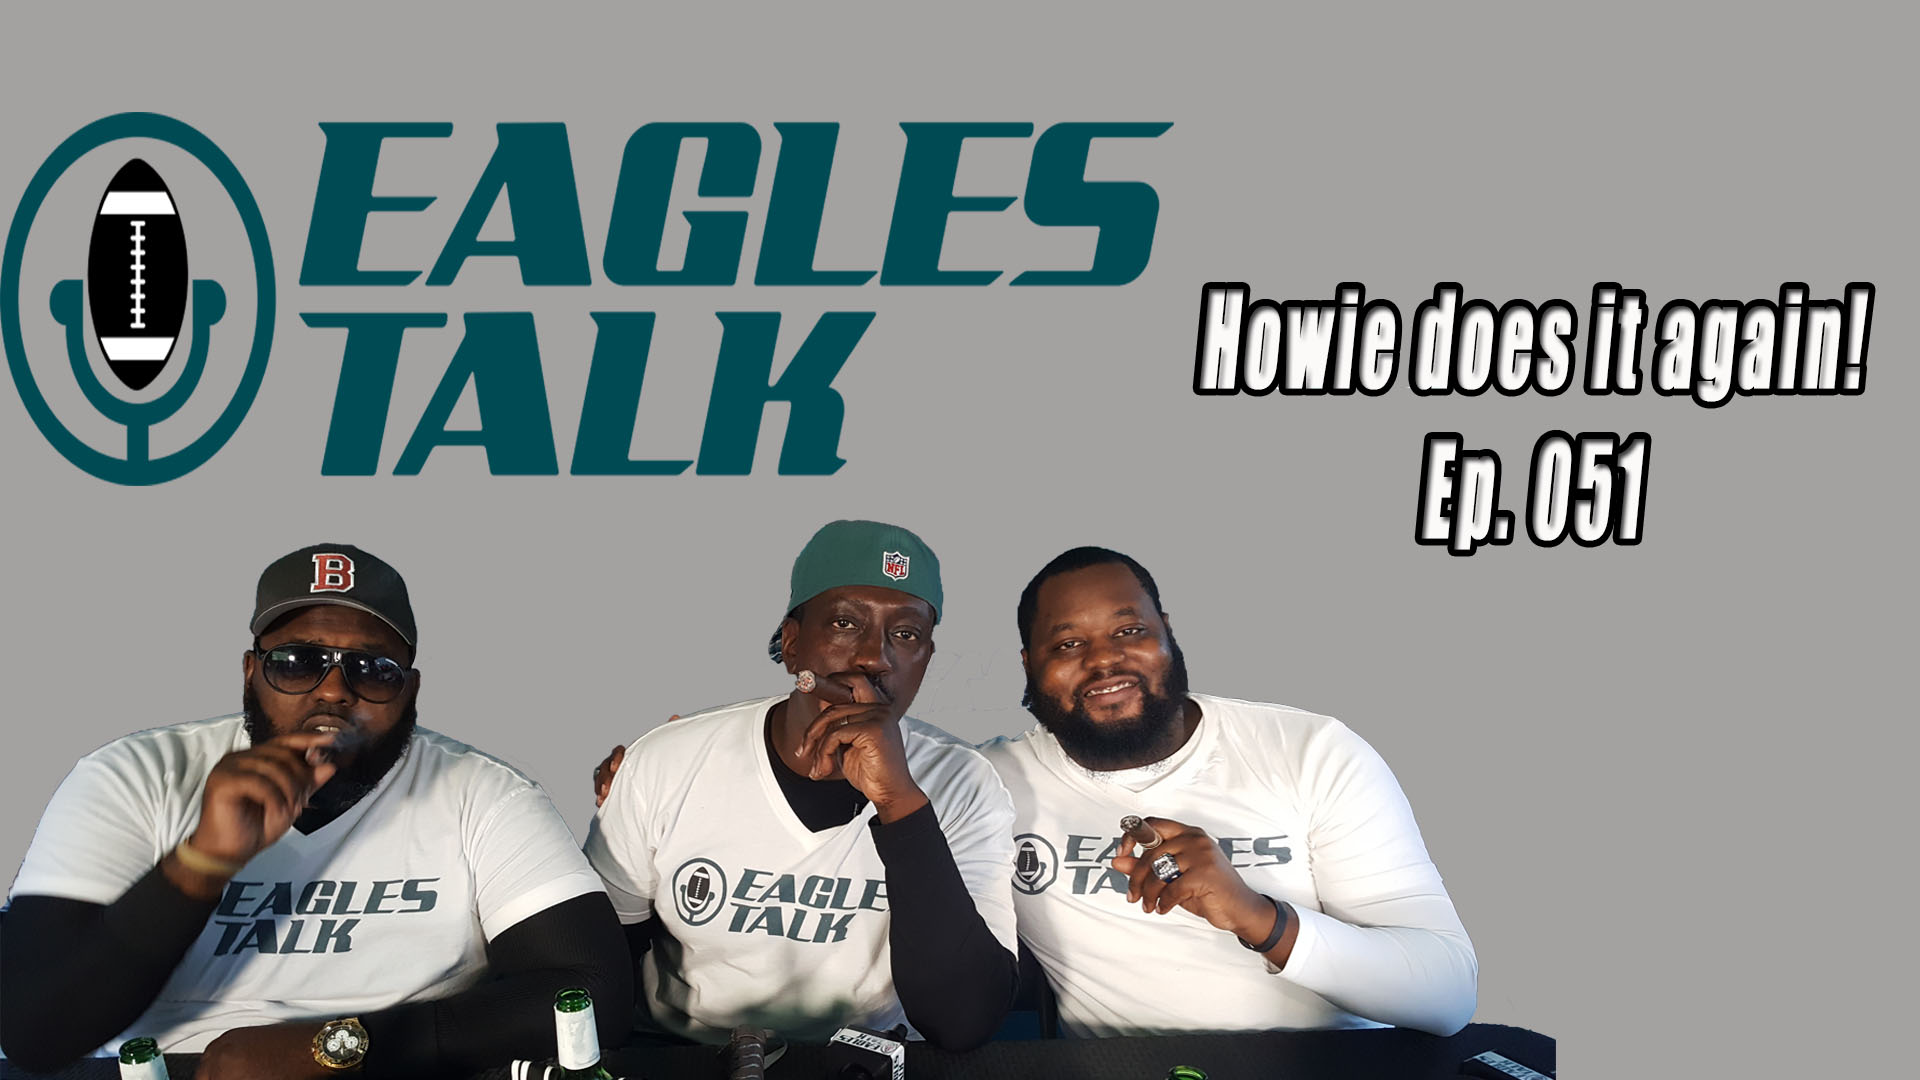 Eagles Talk Ep051: Howie does it again! Eagles acquire DE M. Bennett